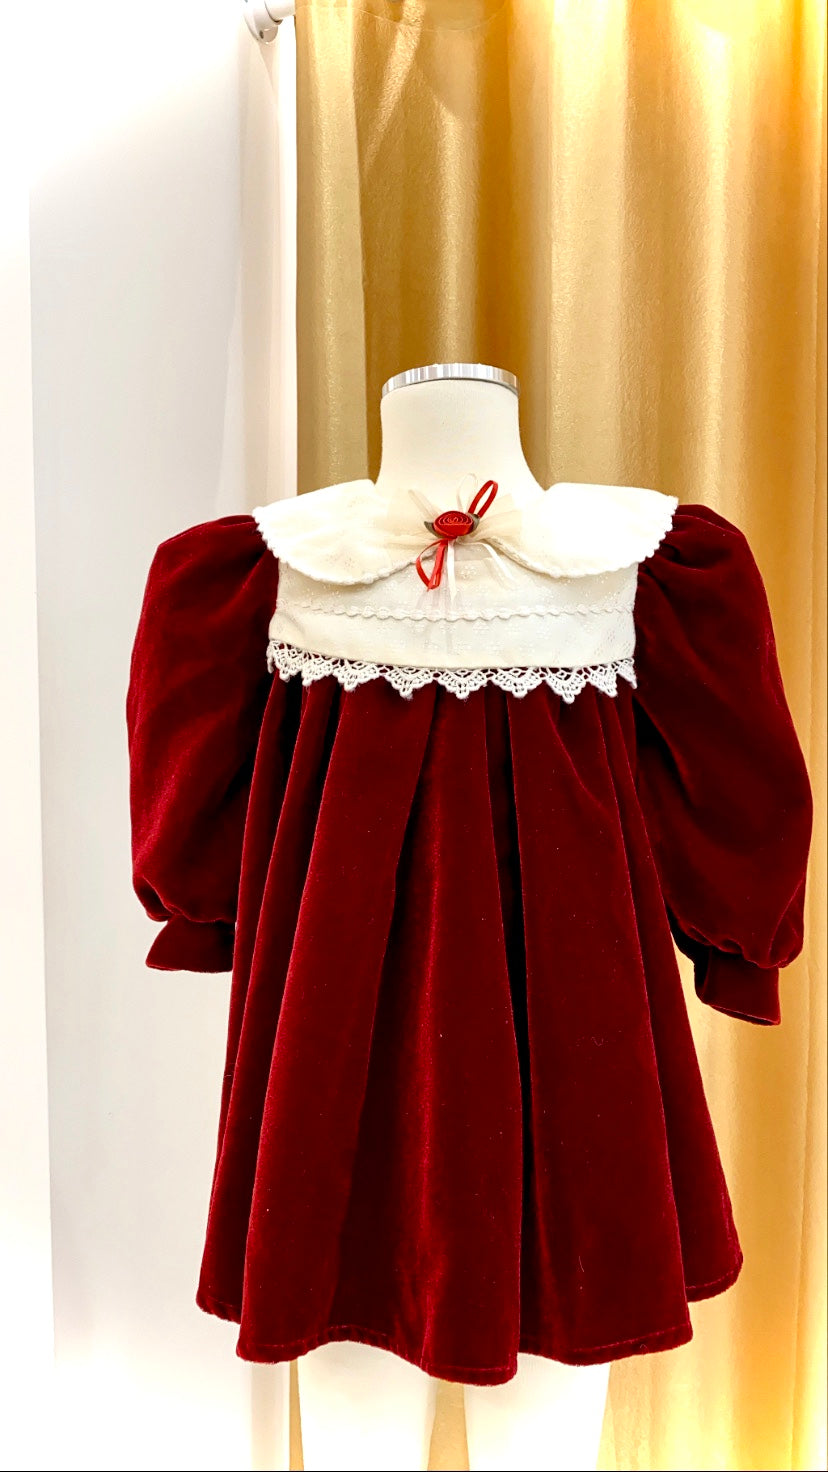 Girls - Vintage - Plush Velvet Dress with Balloon Sleeves and Satin Collar and Yoke - Size 2